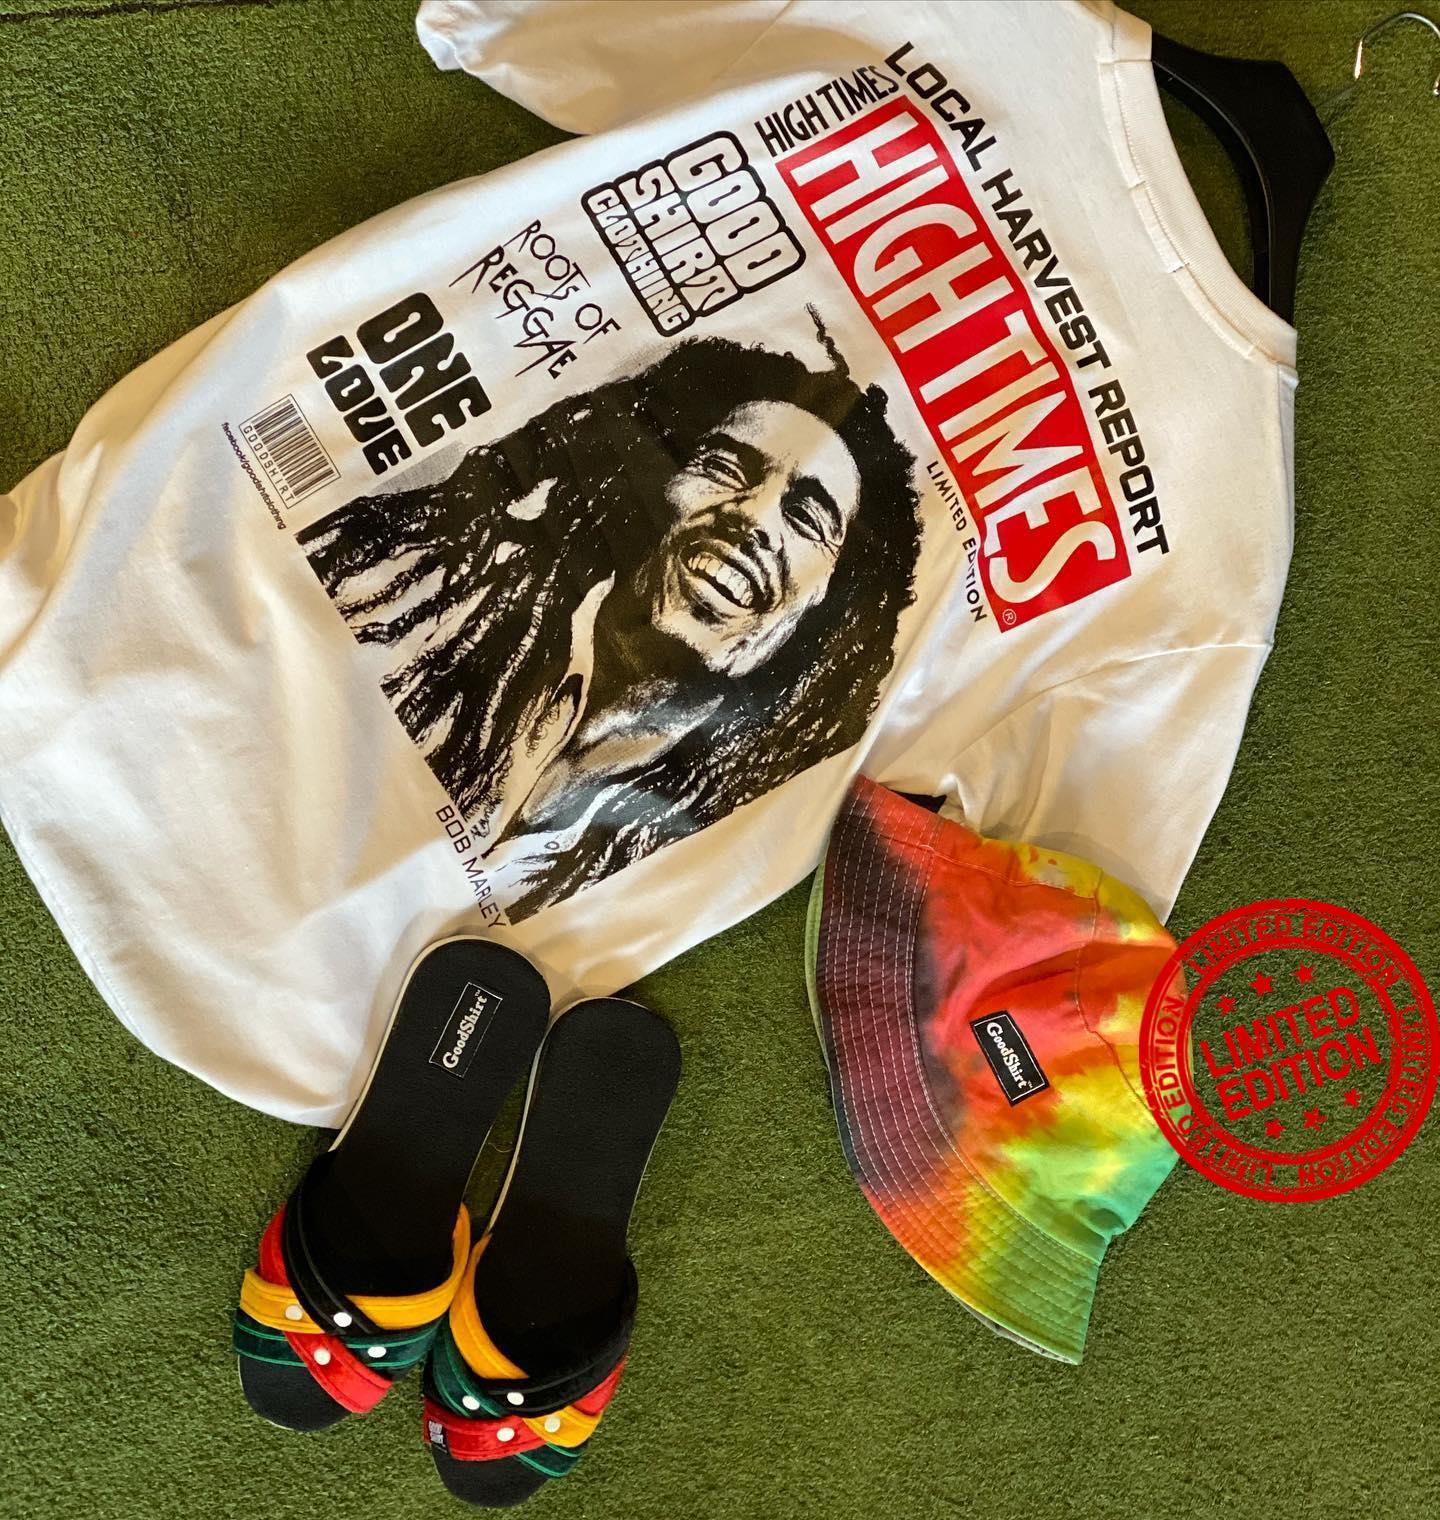 Local Harvest Report High Times Good Shirt Clothing One Love Shirt